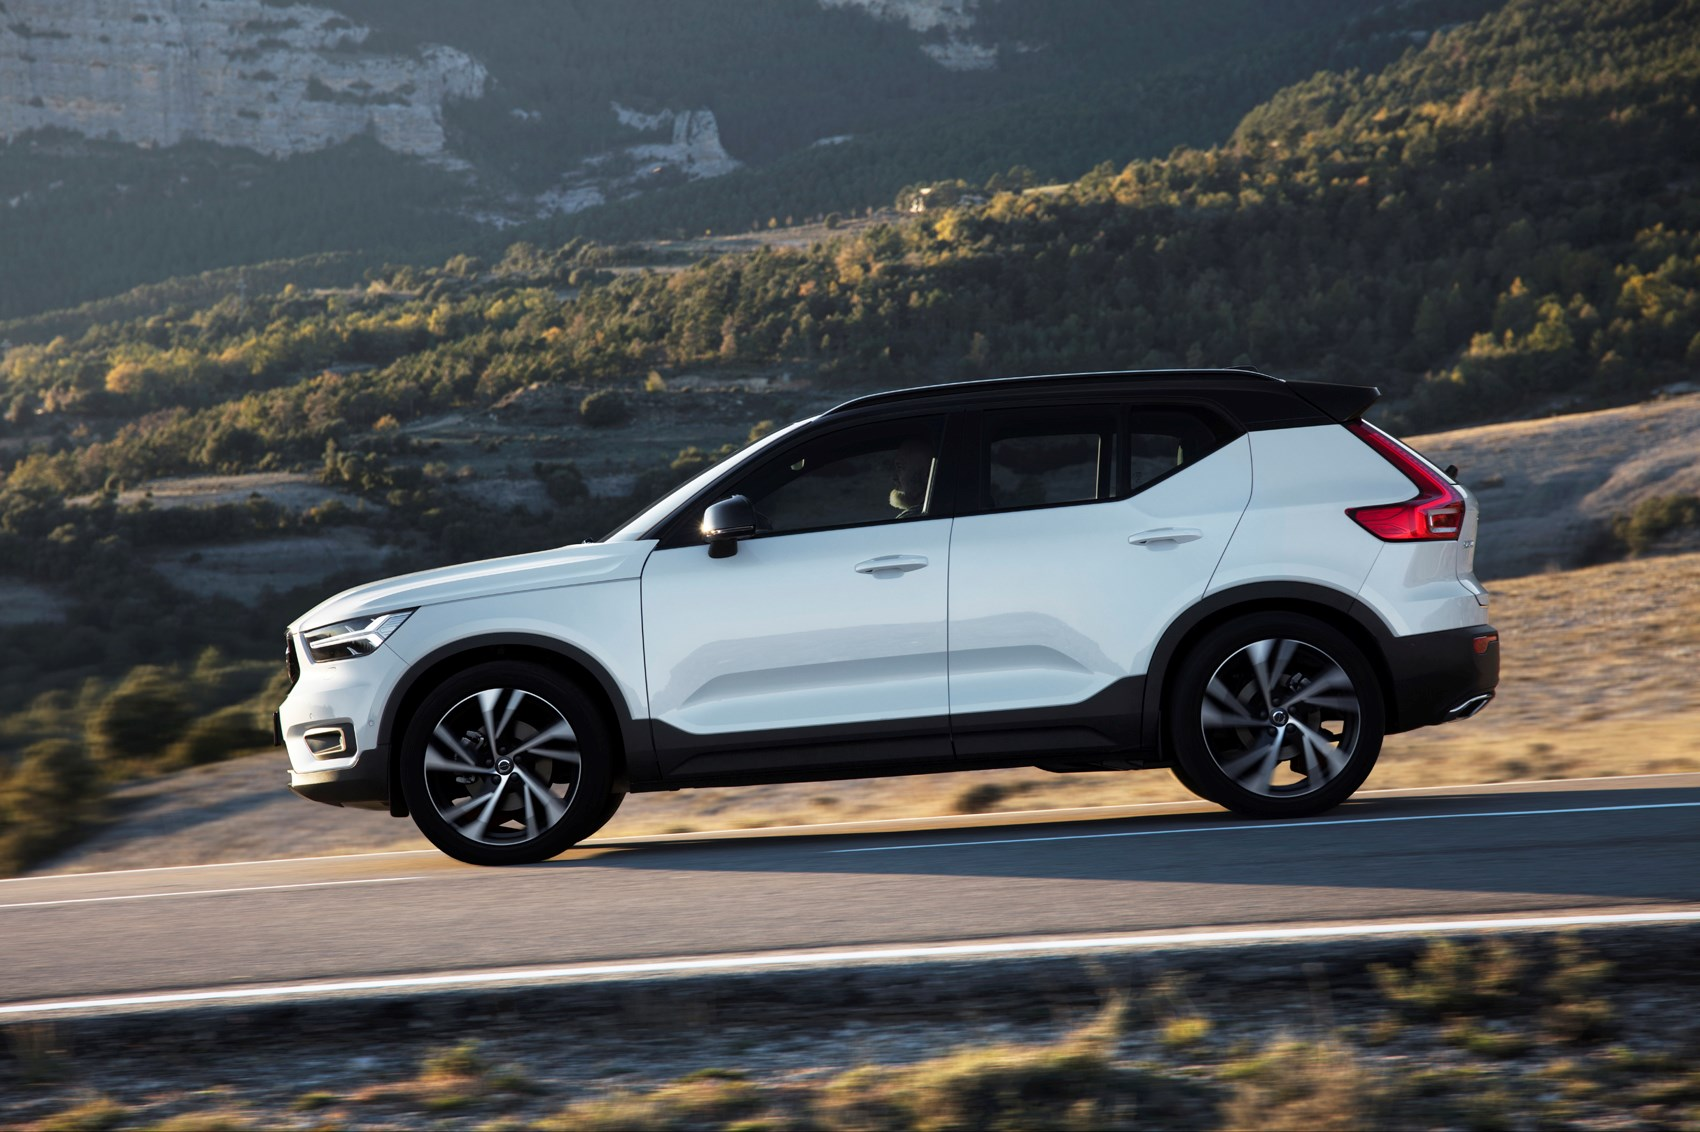 Volvo XC40 SUV (2017 - ) Photos | Parkers